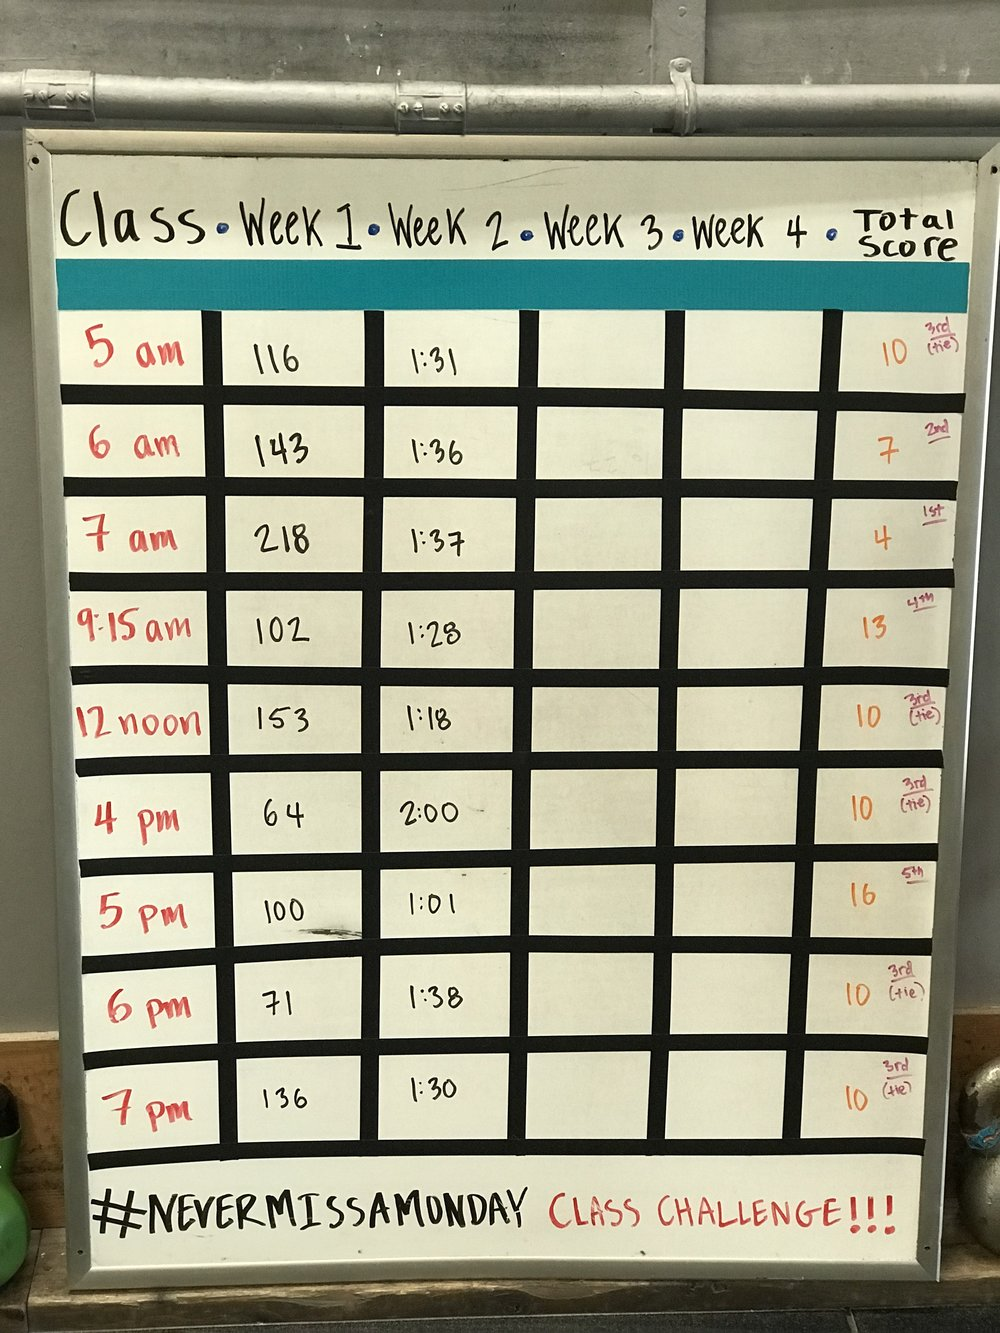 Week 2 in the books! 7 am is holding onto their first place rank, with 6 am close behind….